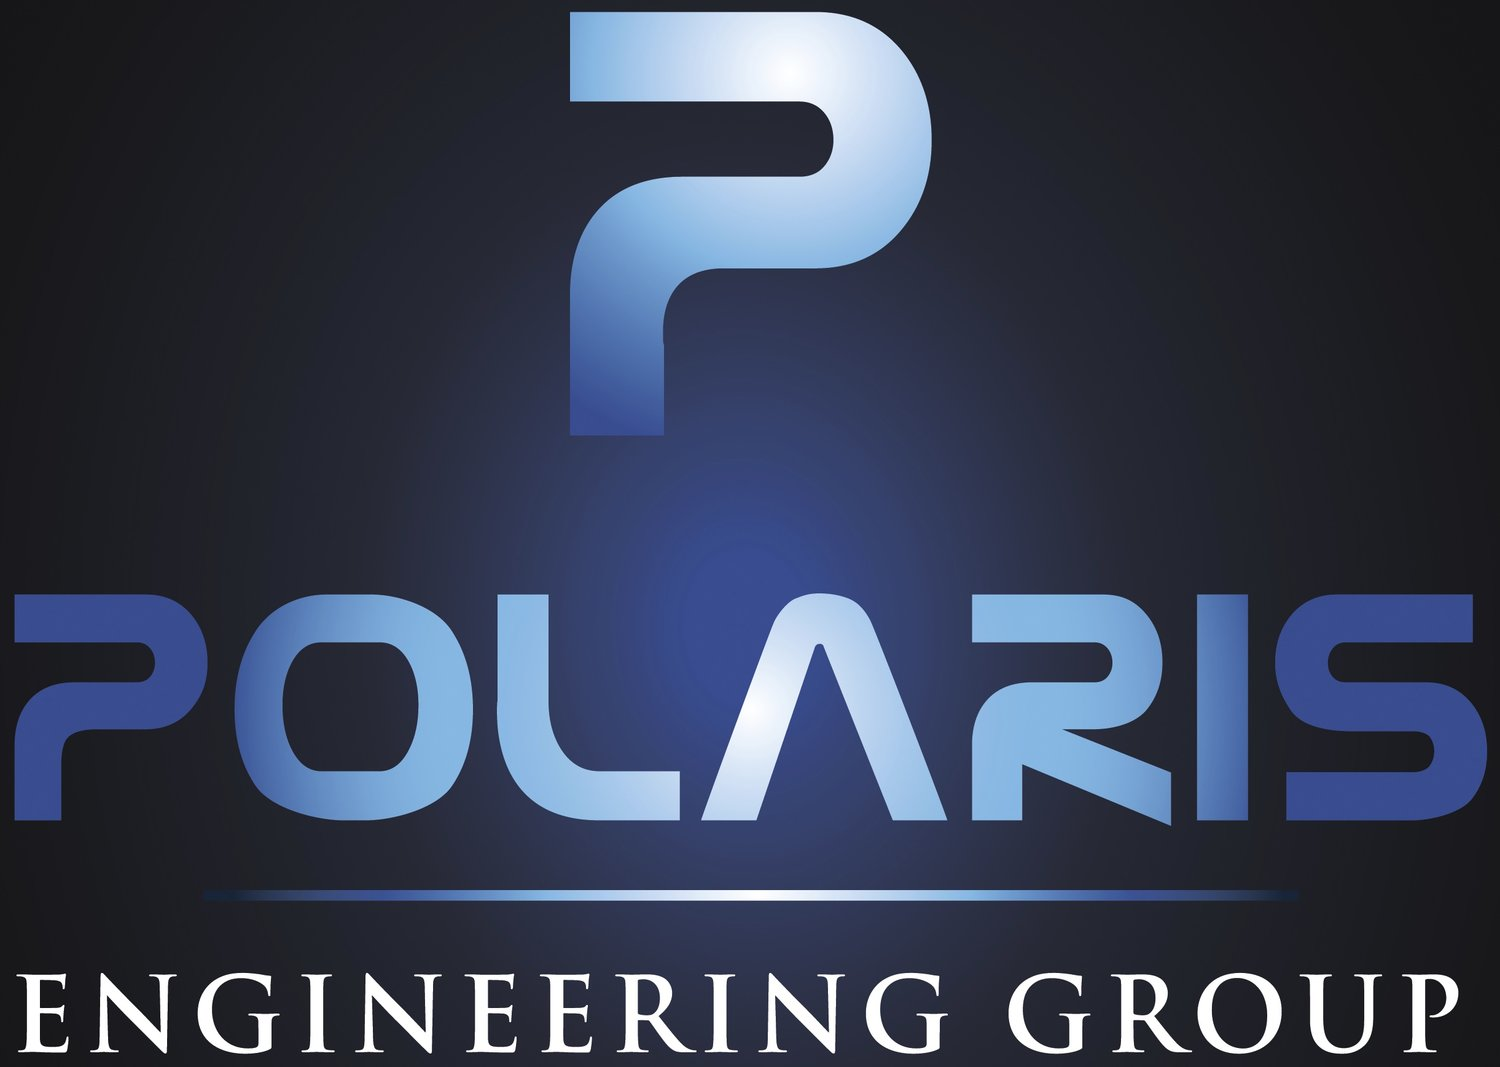 Polaris Engineering Group